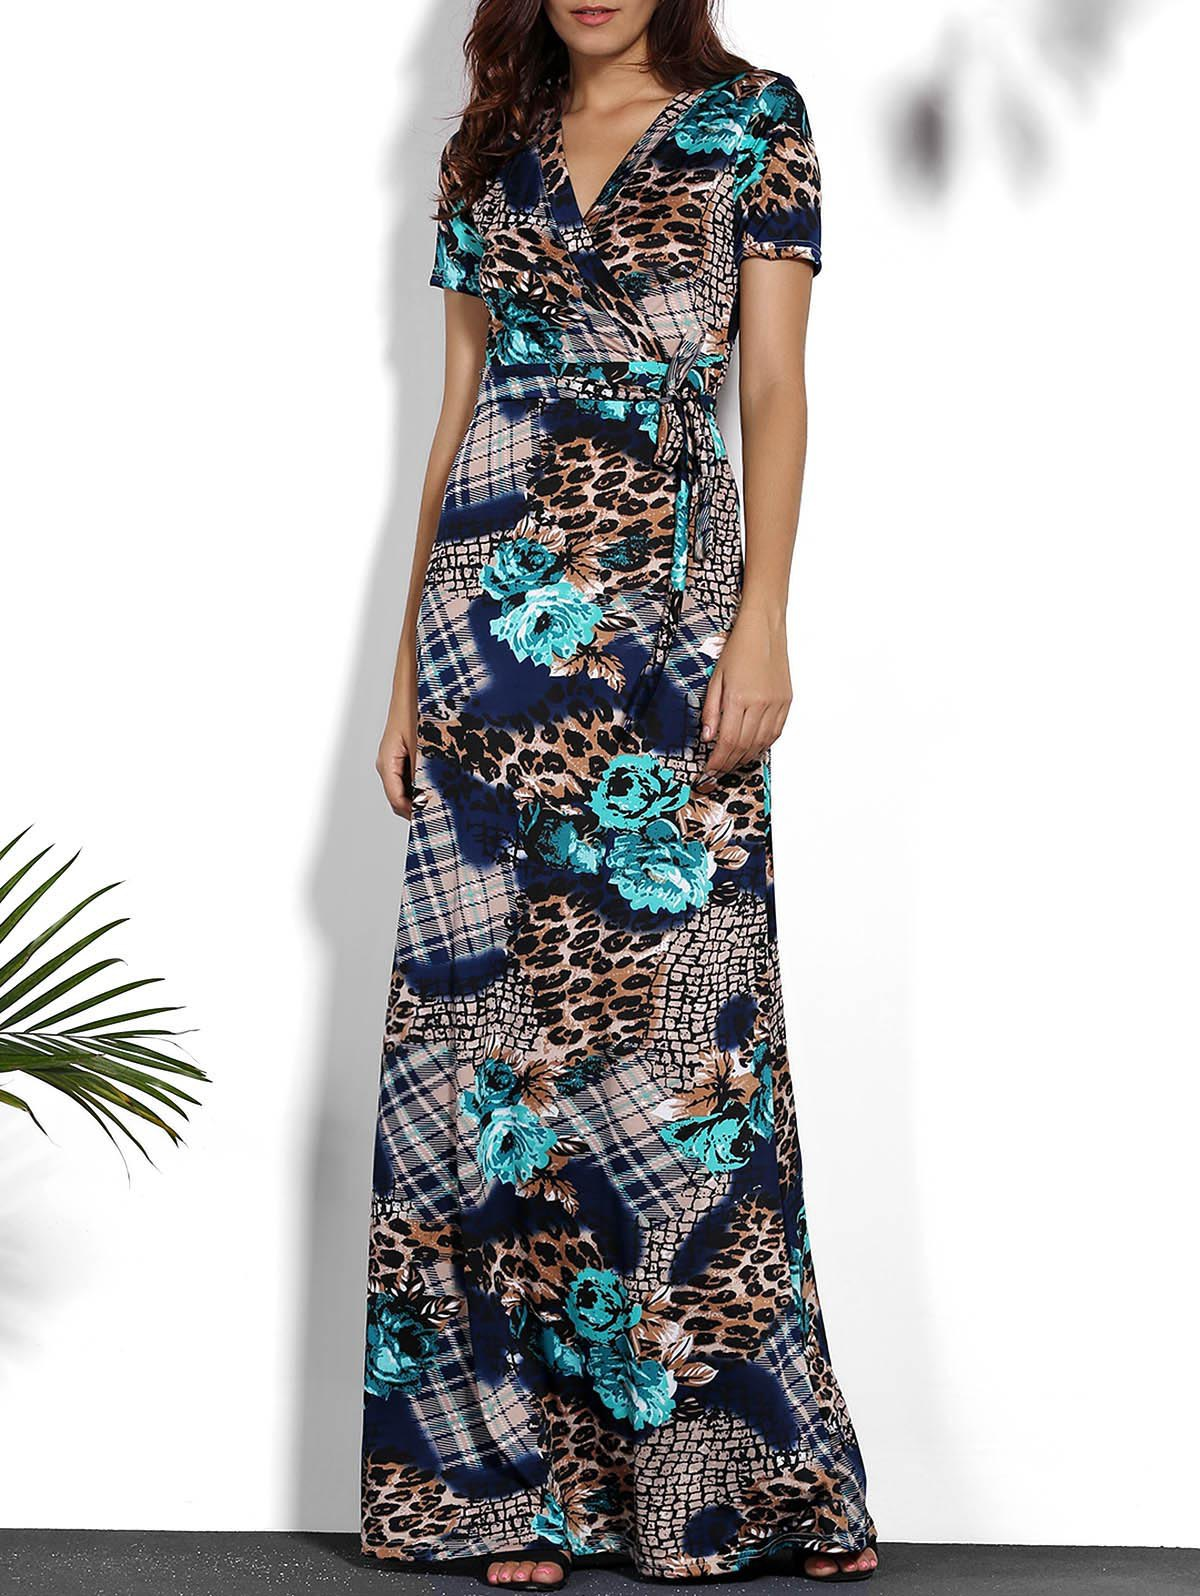 Chic Printed V-Neck Short Sleeve Maxi Dress For Women - COLORMIX L